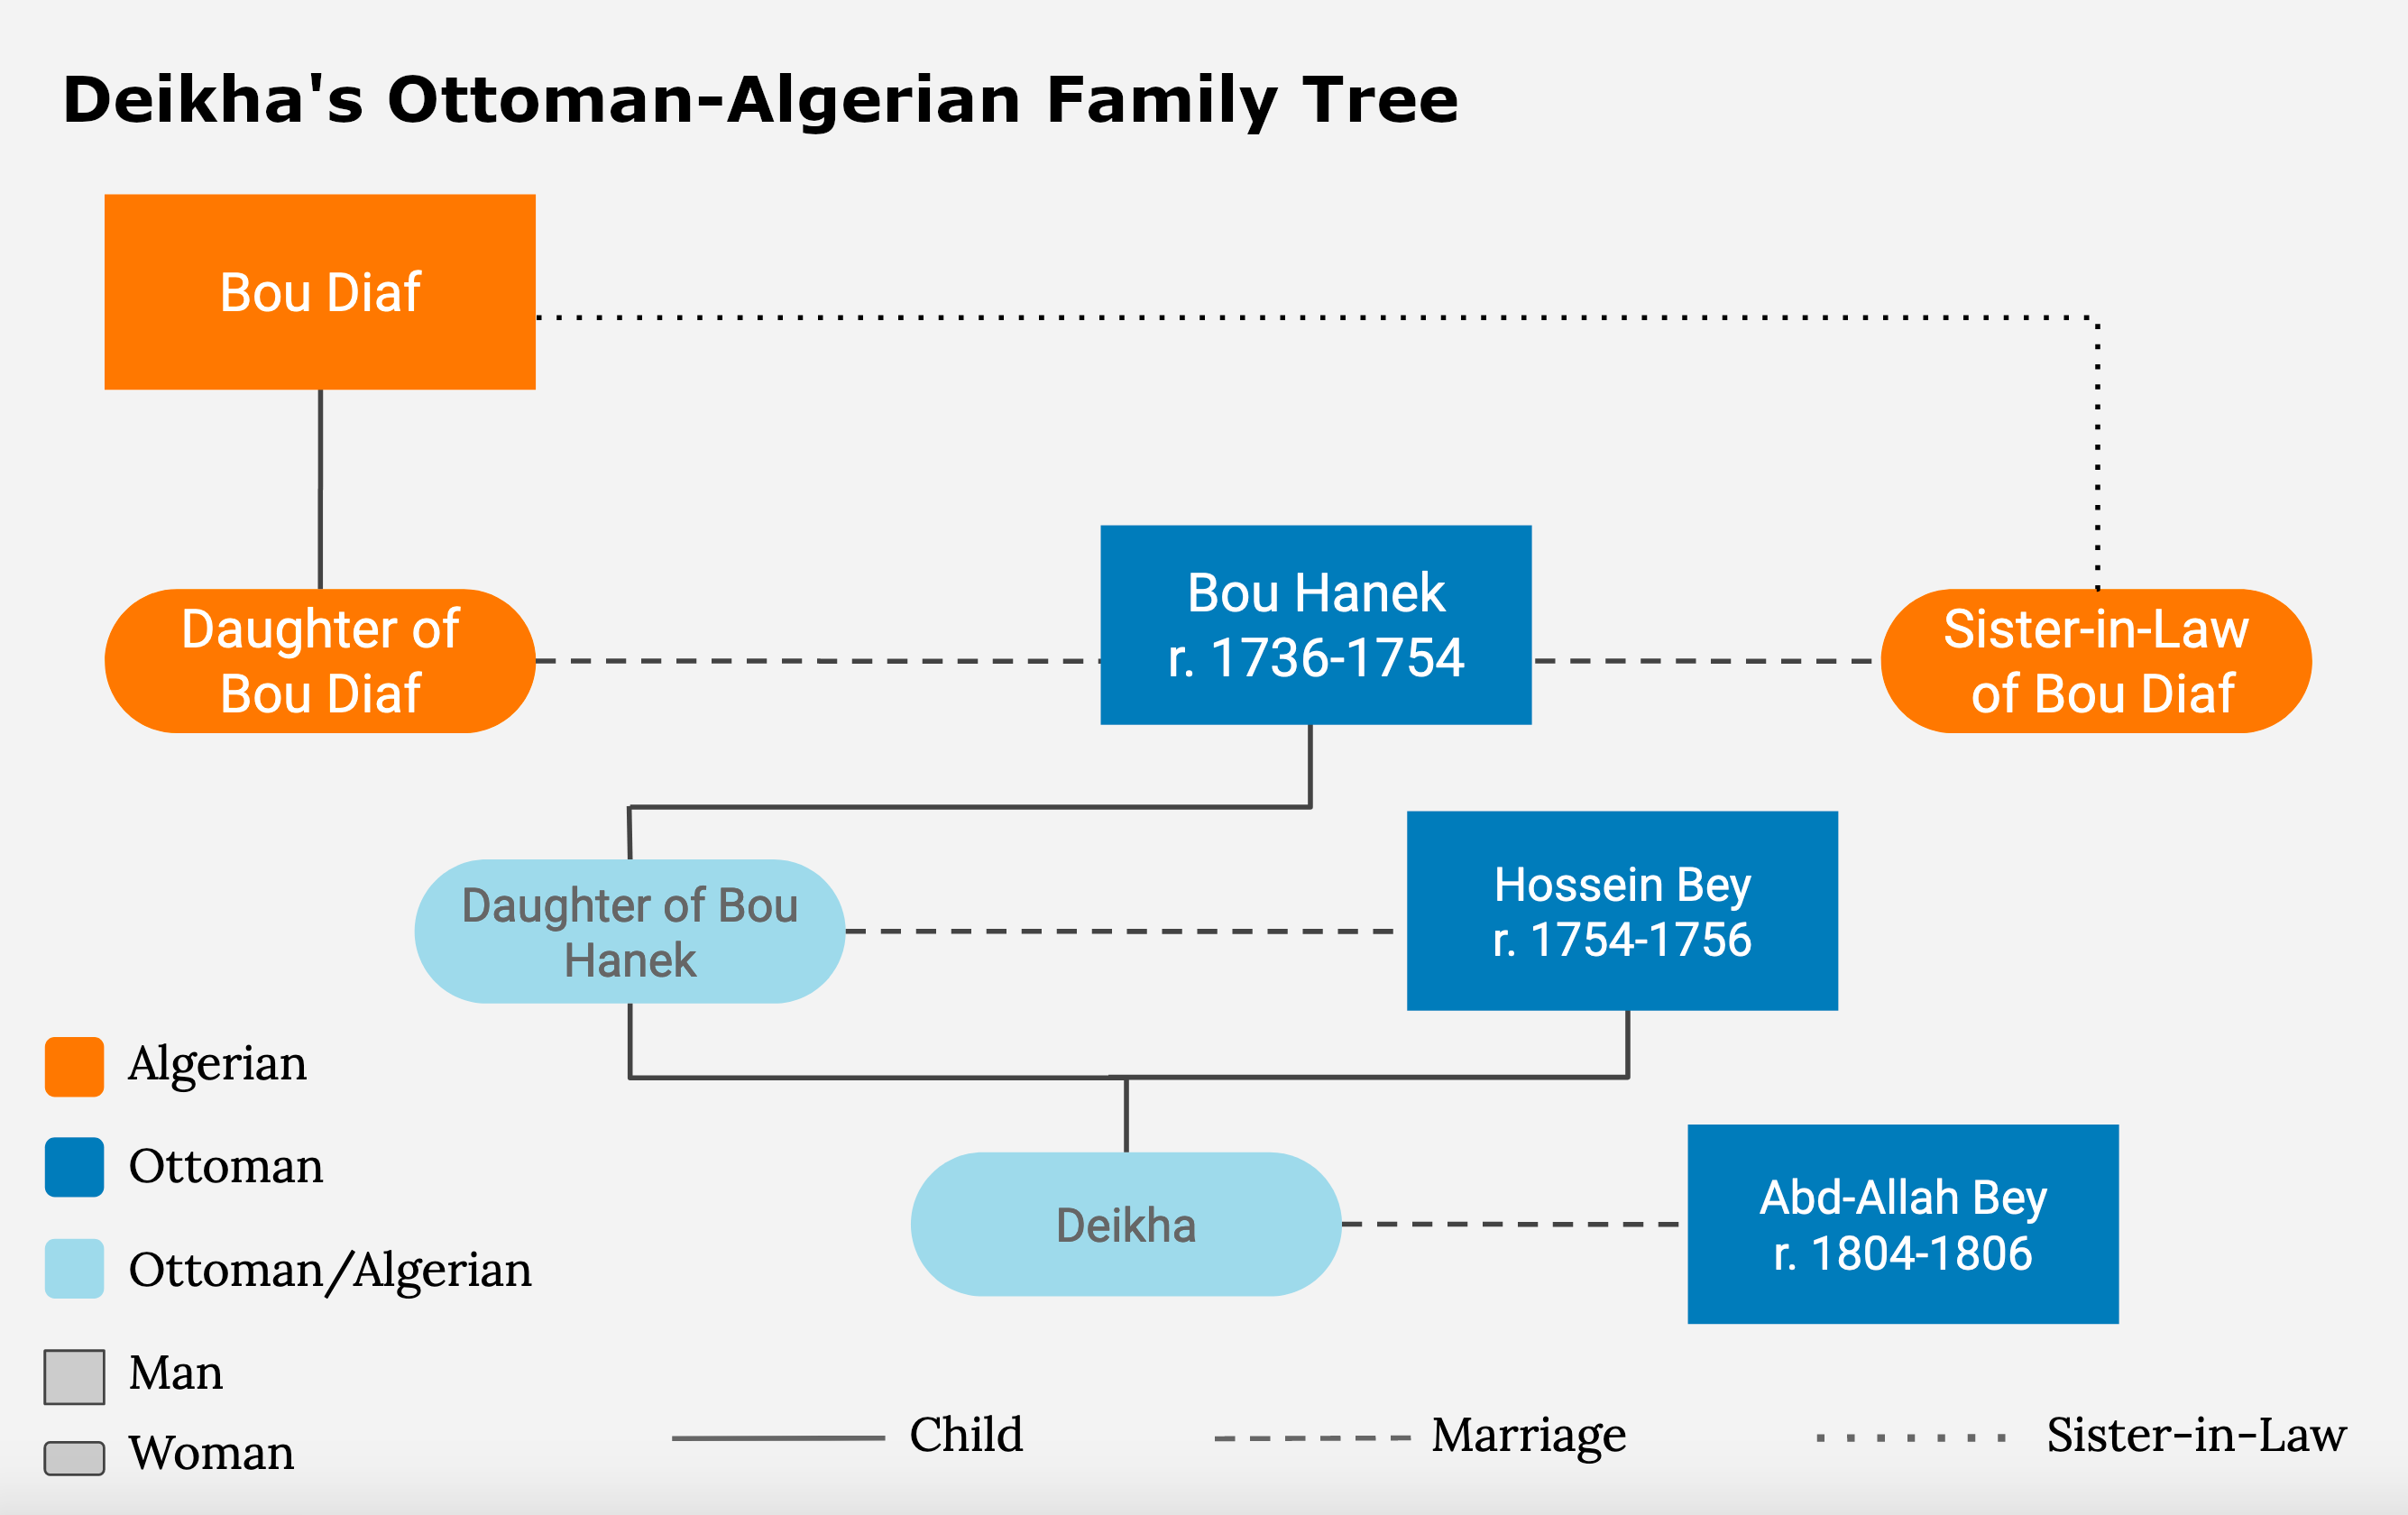 Family tree for Deikha, showing three generations of intermarriage between Algerian or Algerian/Ottoman women and Ottoman men.